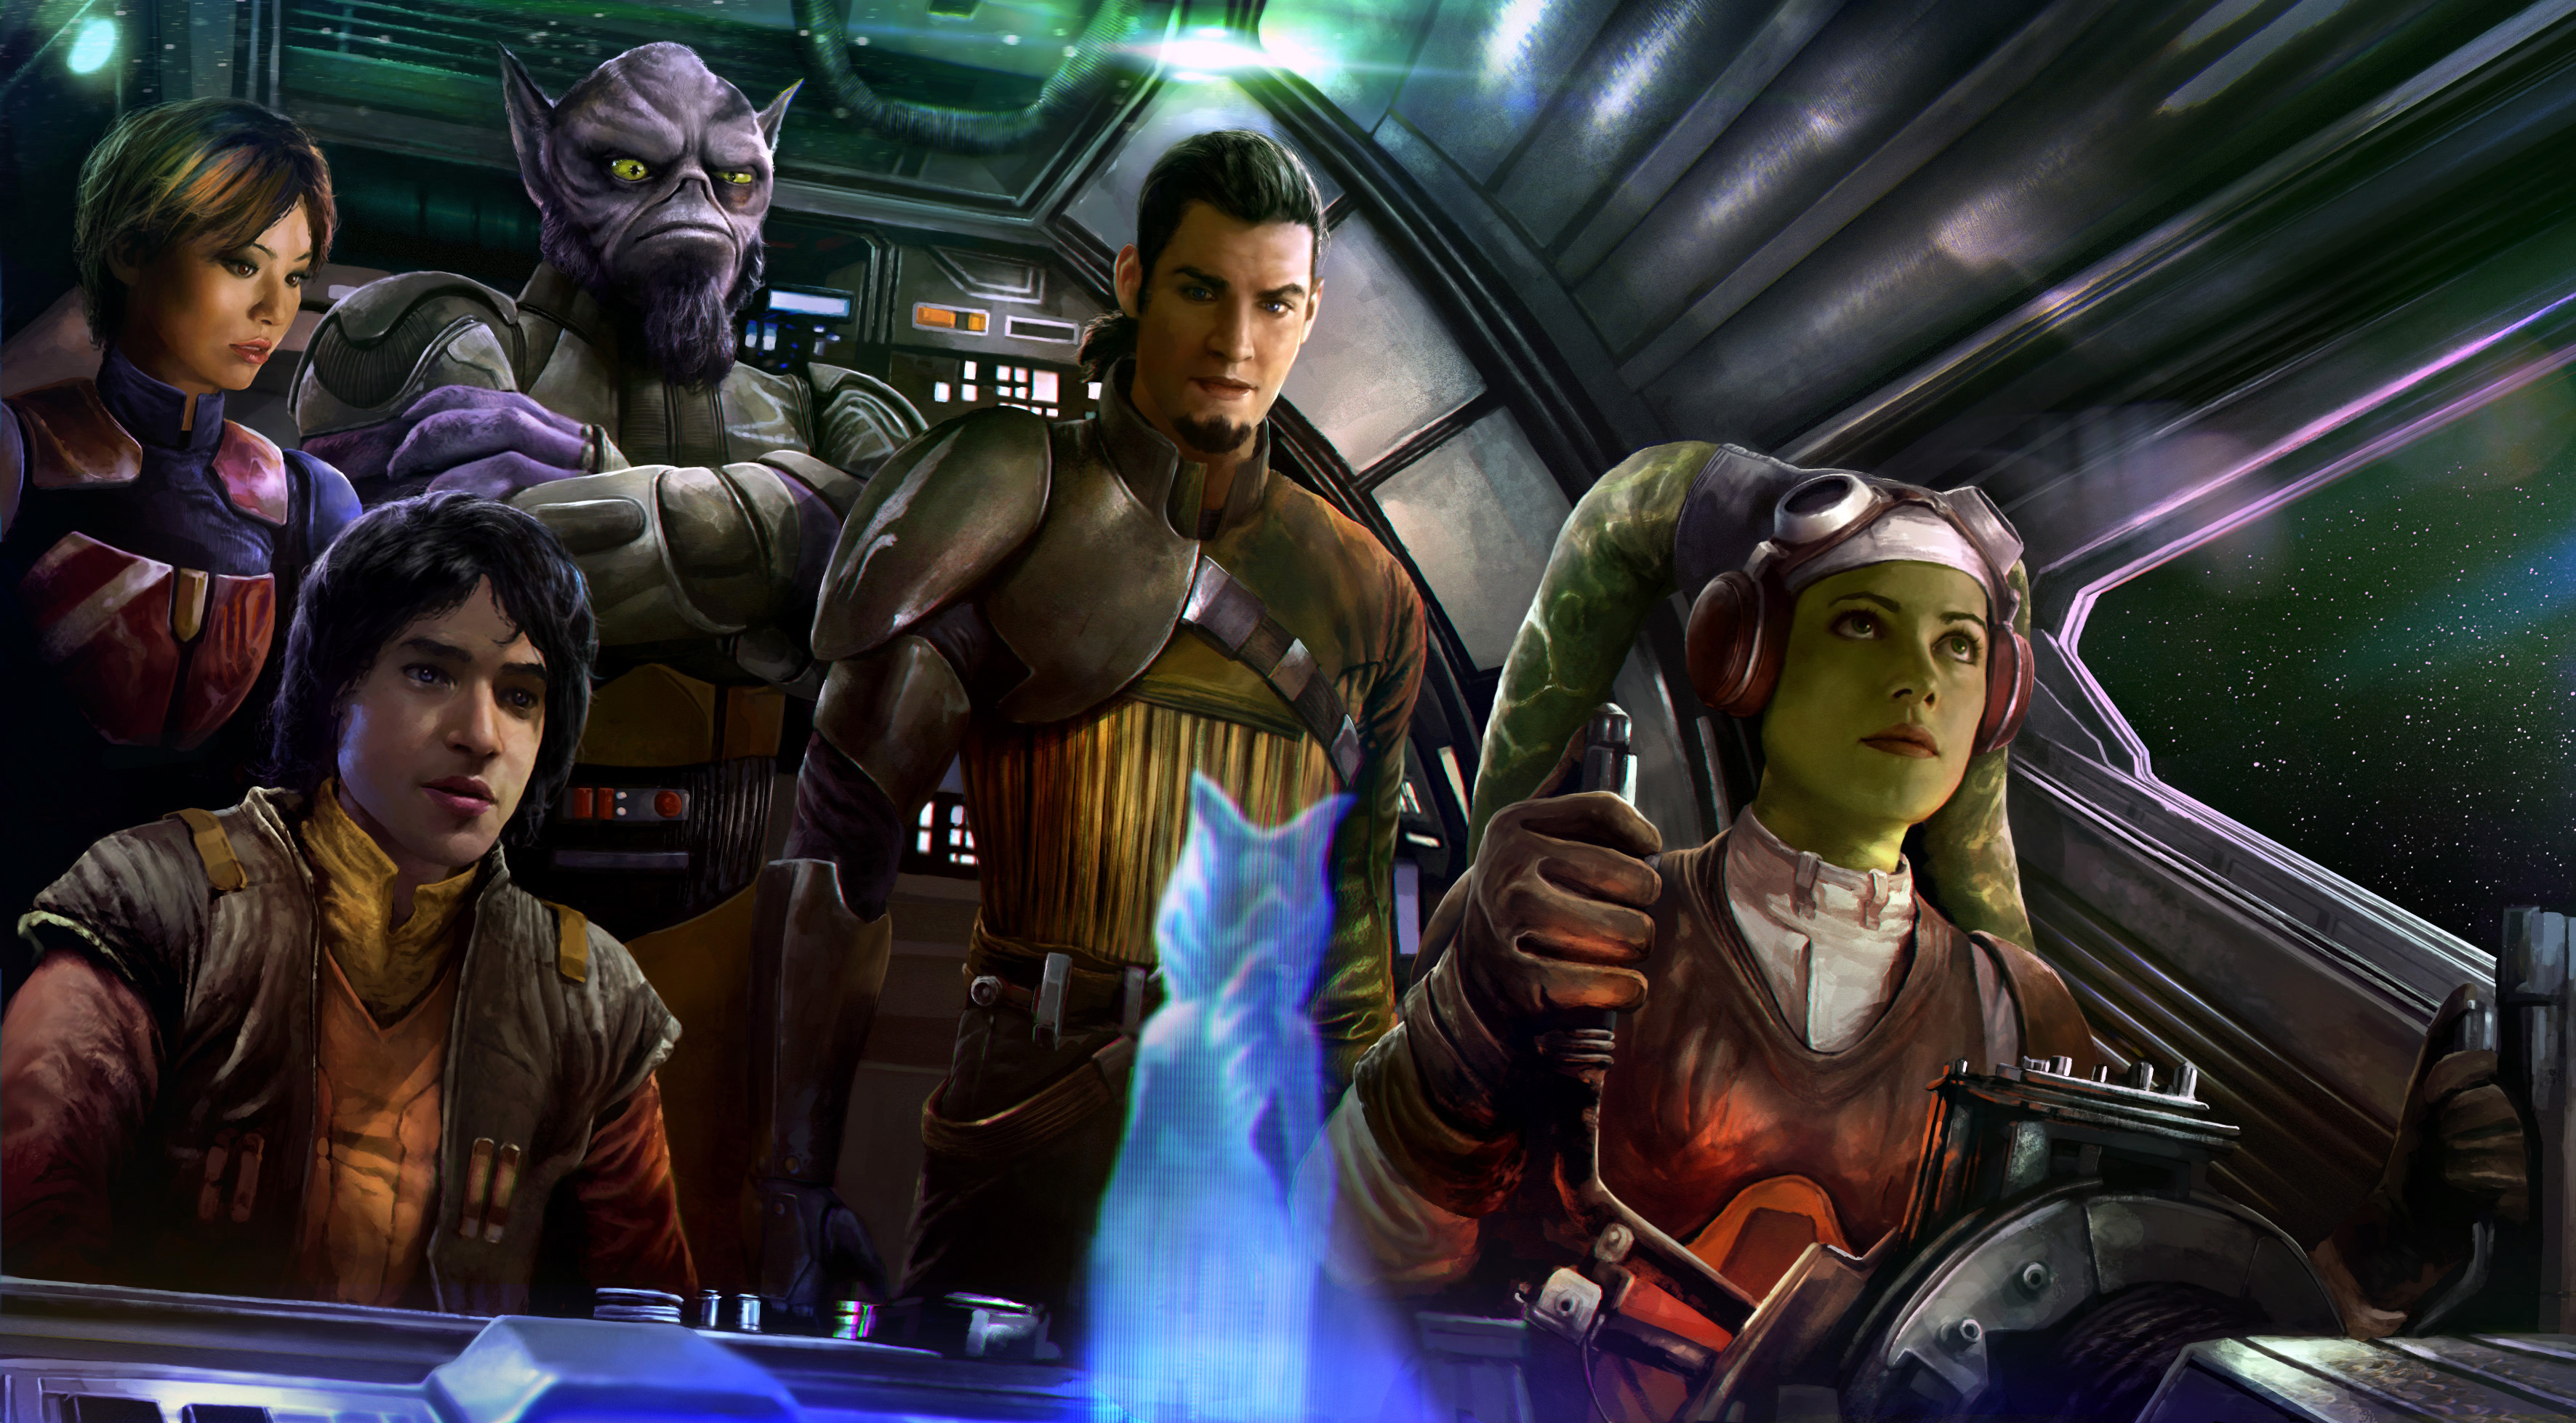 star_wars__rebels_by_mehdic-d9utdnm.jpg